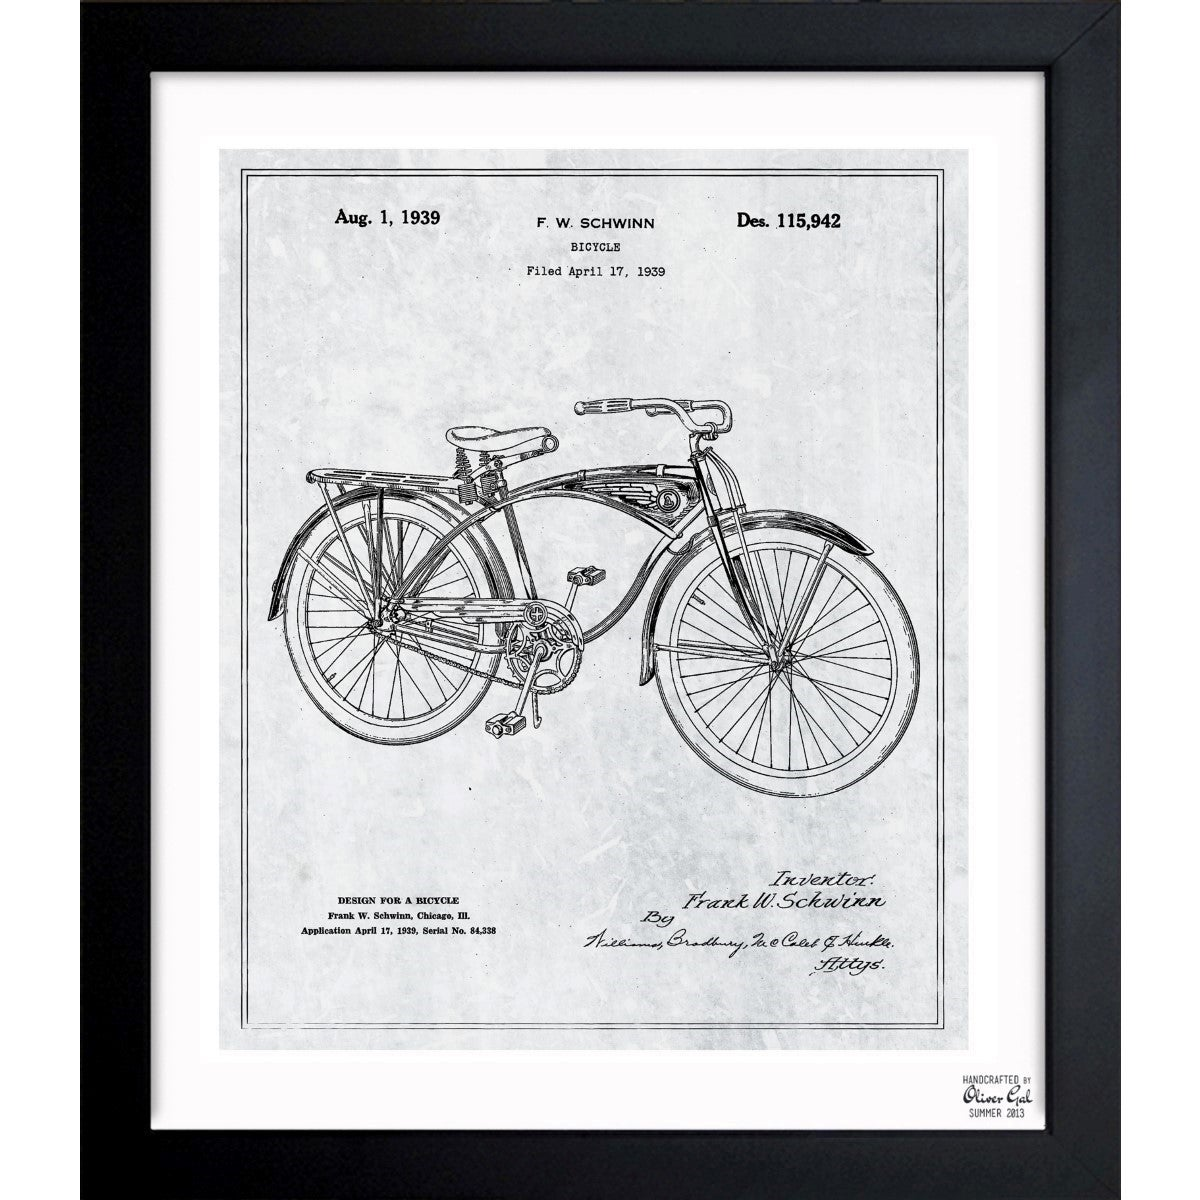 Shop oliver gal schwinn bicycle 1939 grey framed blueprint art shop oliver gal schwinn bicycle 1939 grey framed blueprint art on sale free shipping today overstock 11535016 malvernweather Image collections